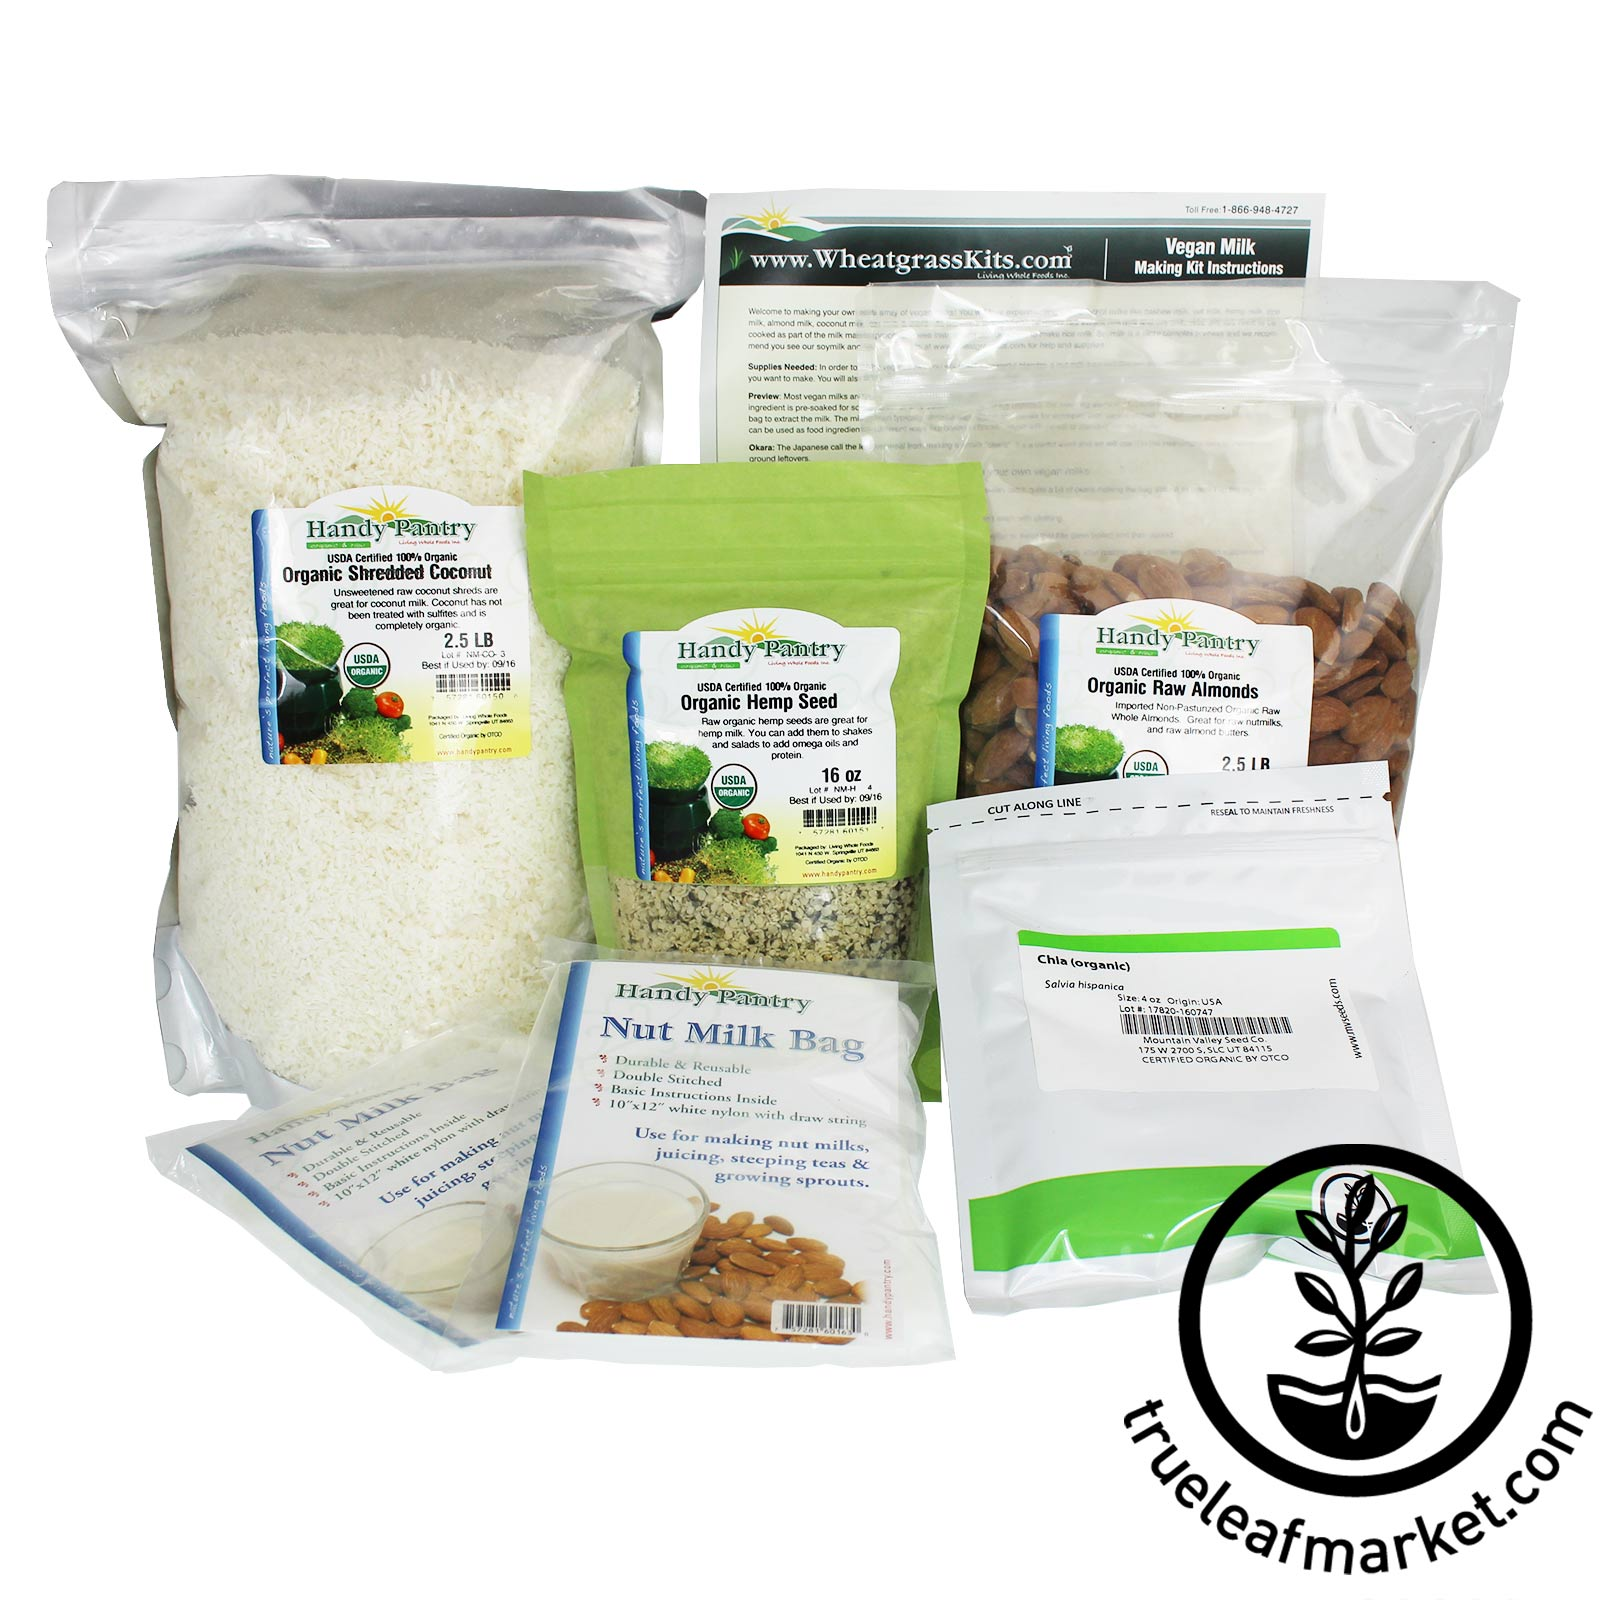 Basic Vegan Milk Kit - Organic vegan milk, nut milk, non dairy, vegan milk making, basic kit